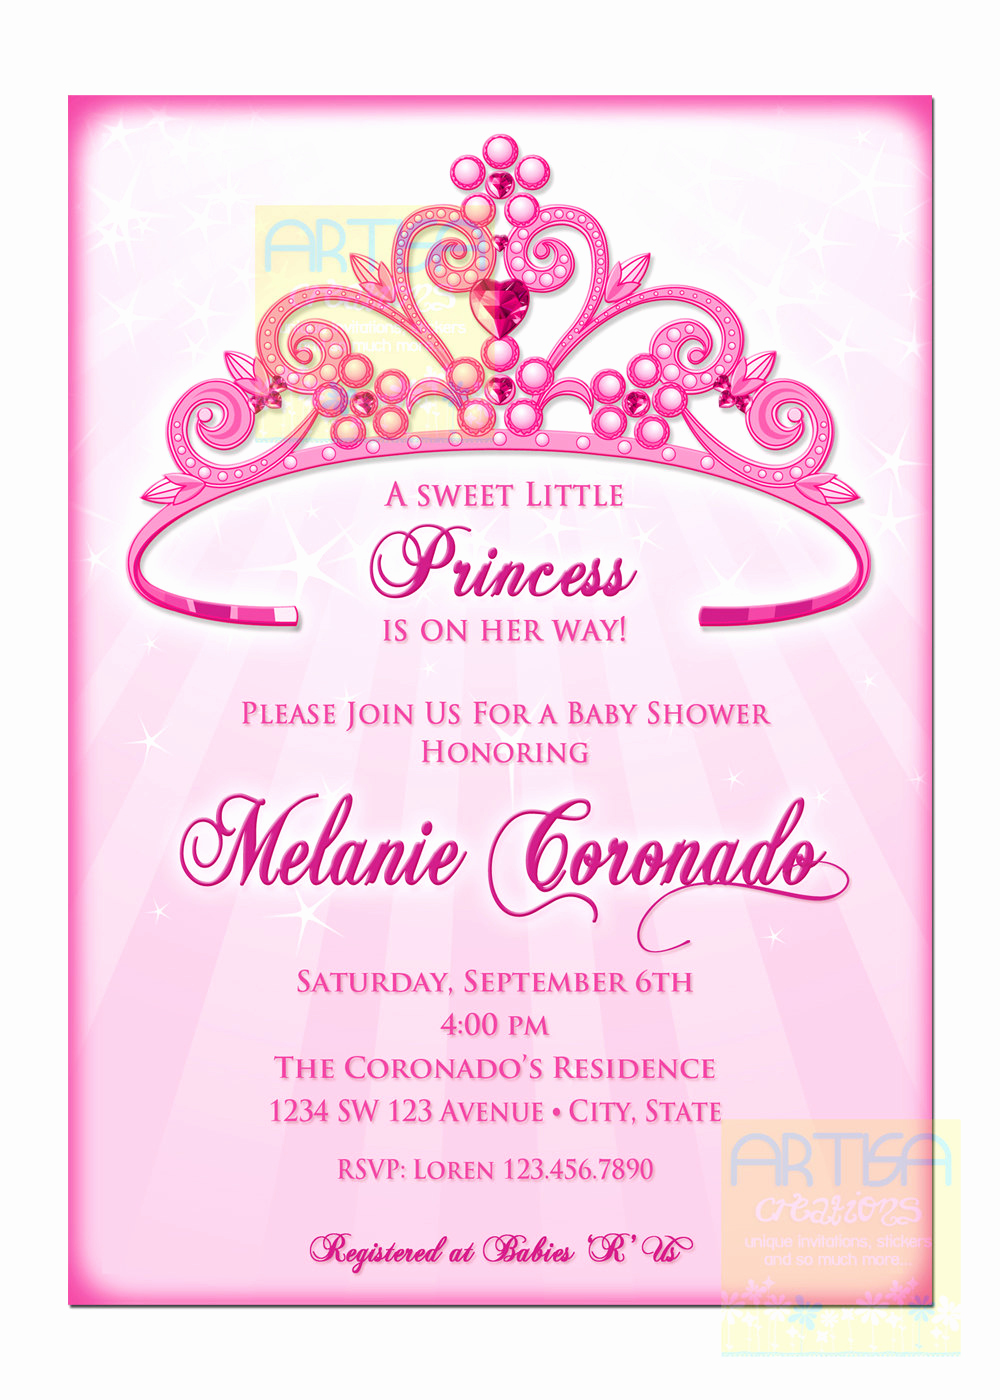 Princess Baby Shower Invitation Fresh Princess Baby Shower Invitation Diy Princess Crown Baby